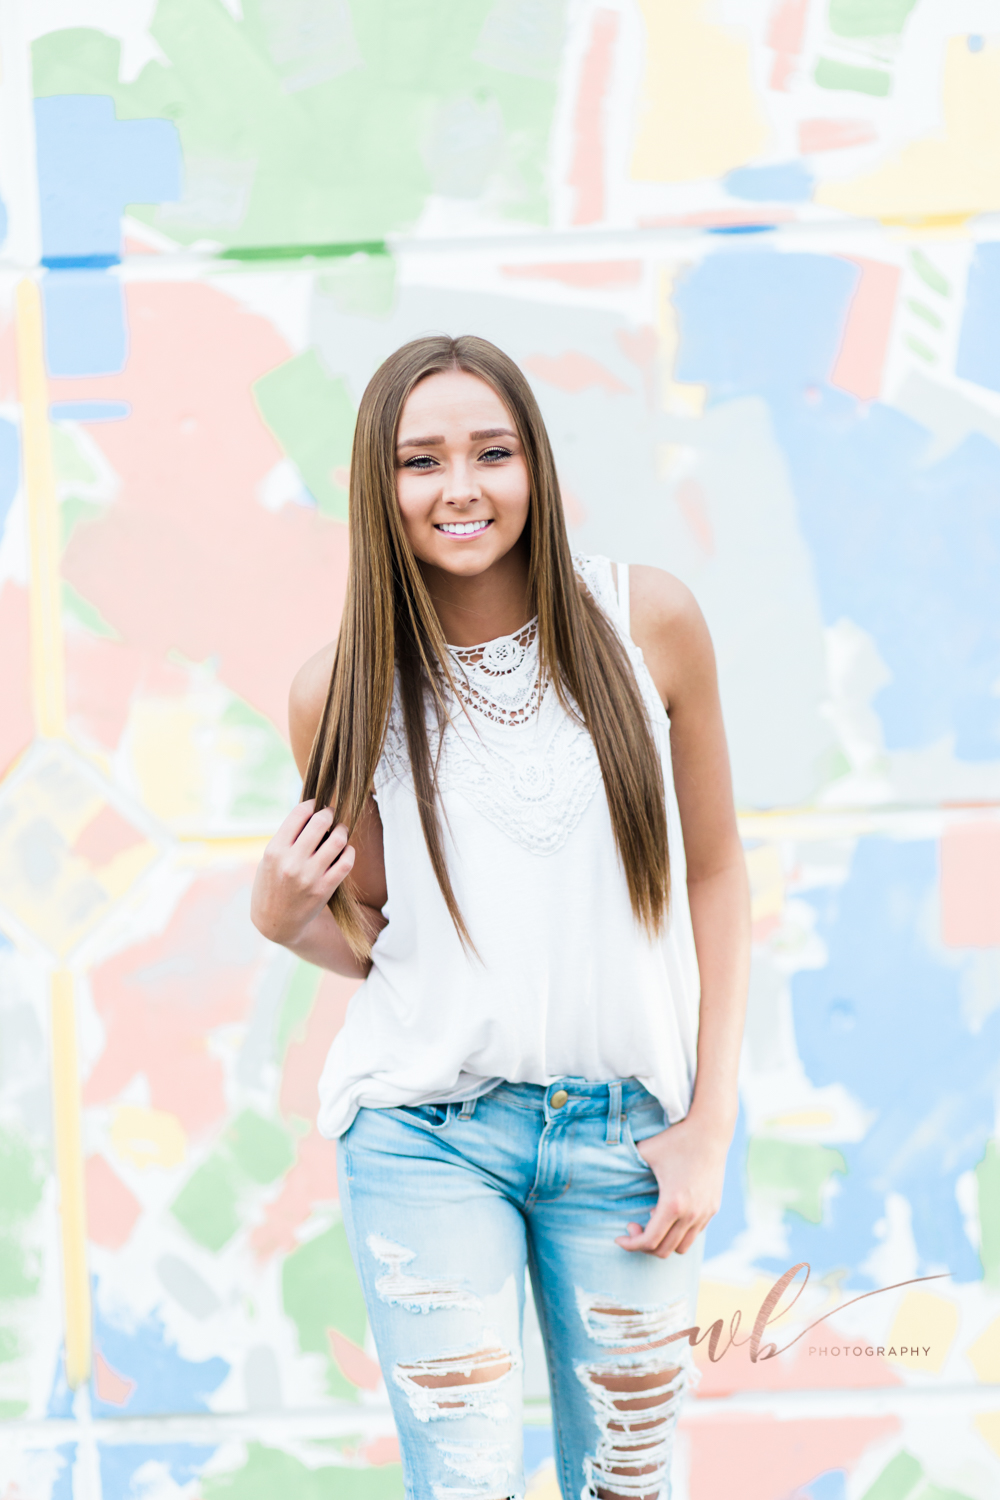 Provo Utah high school senior photographer